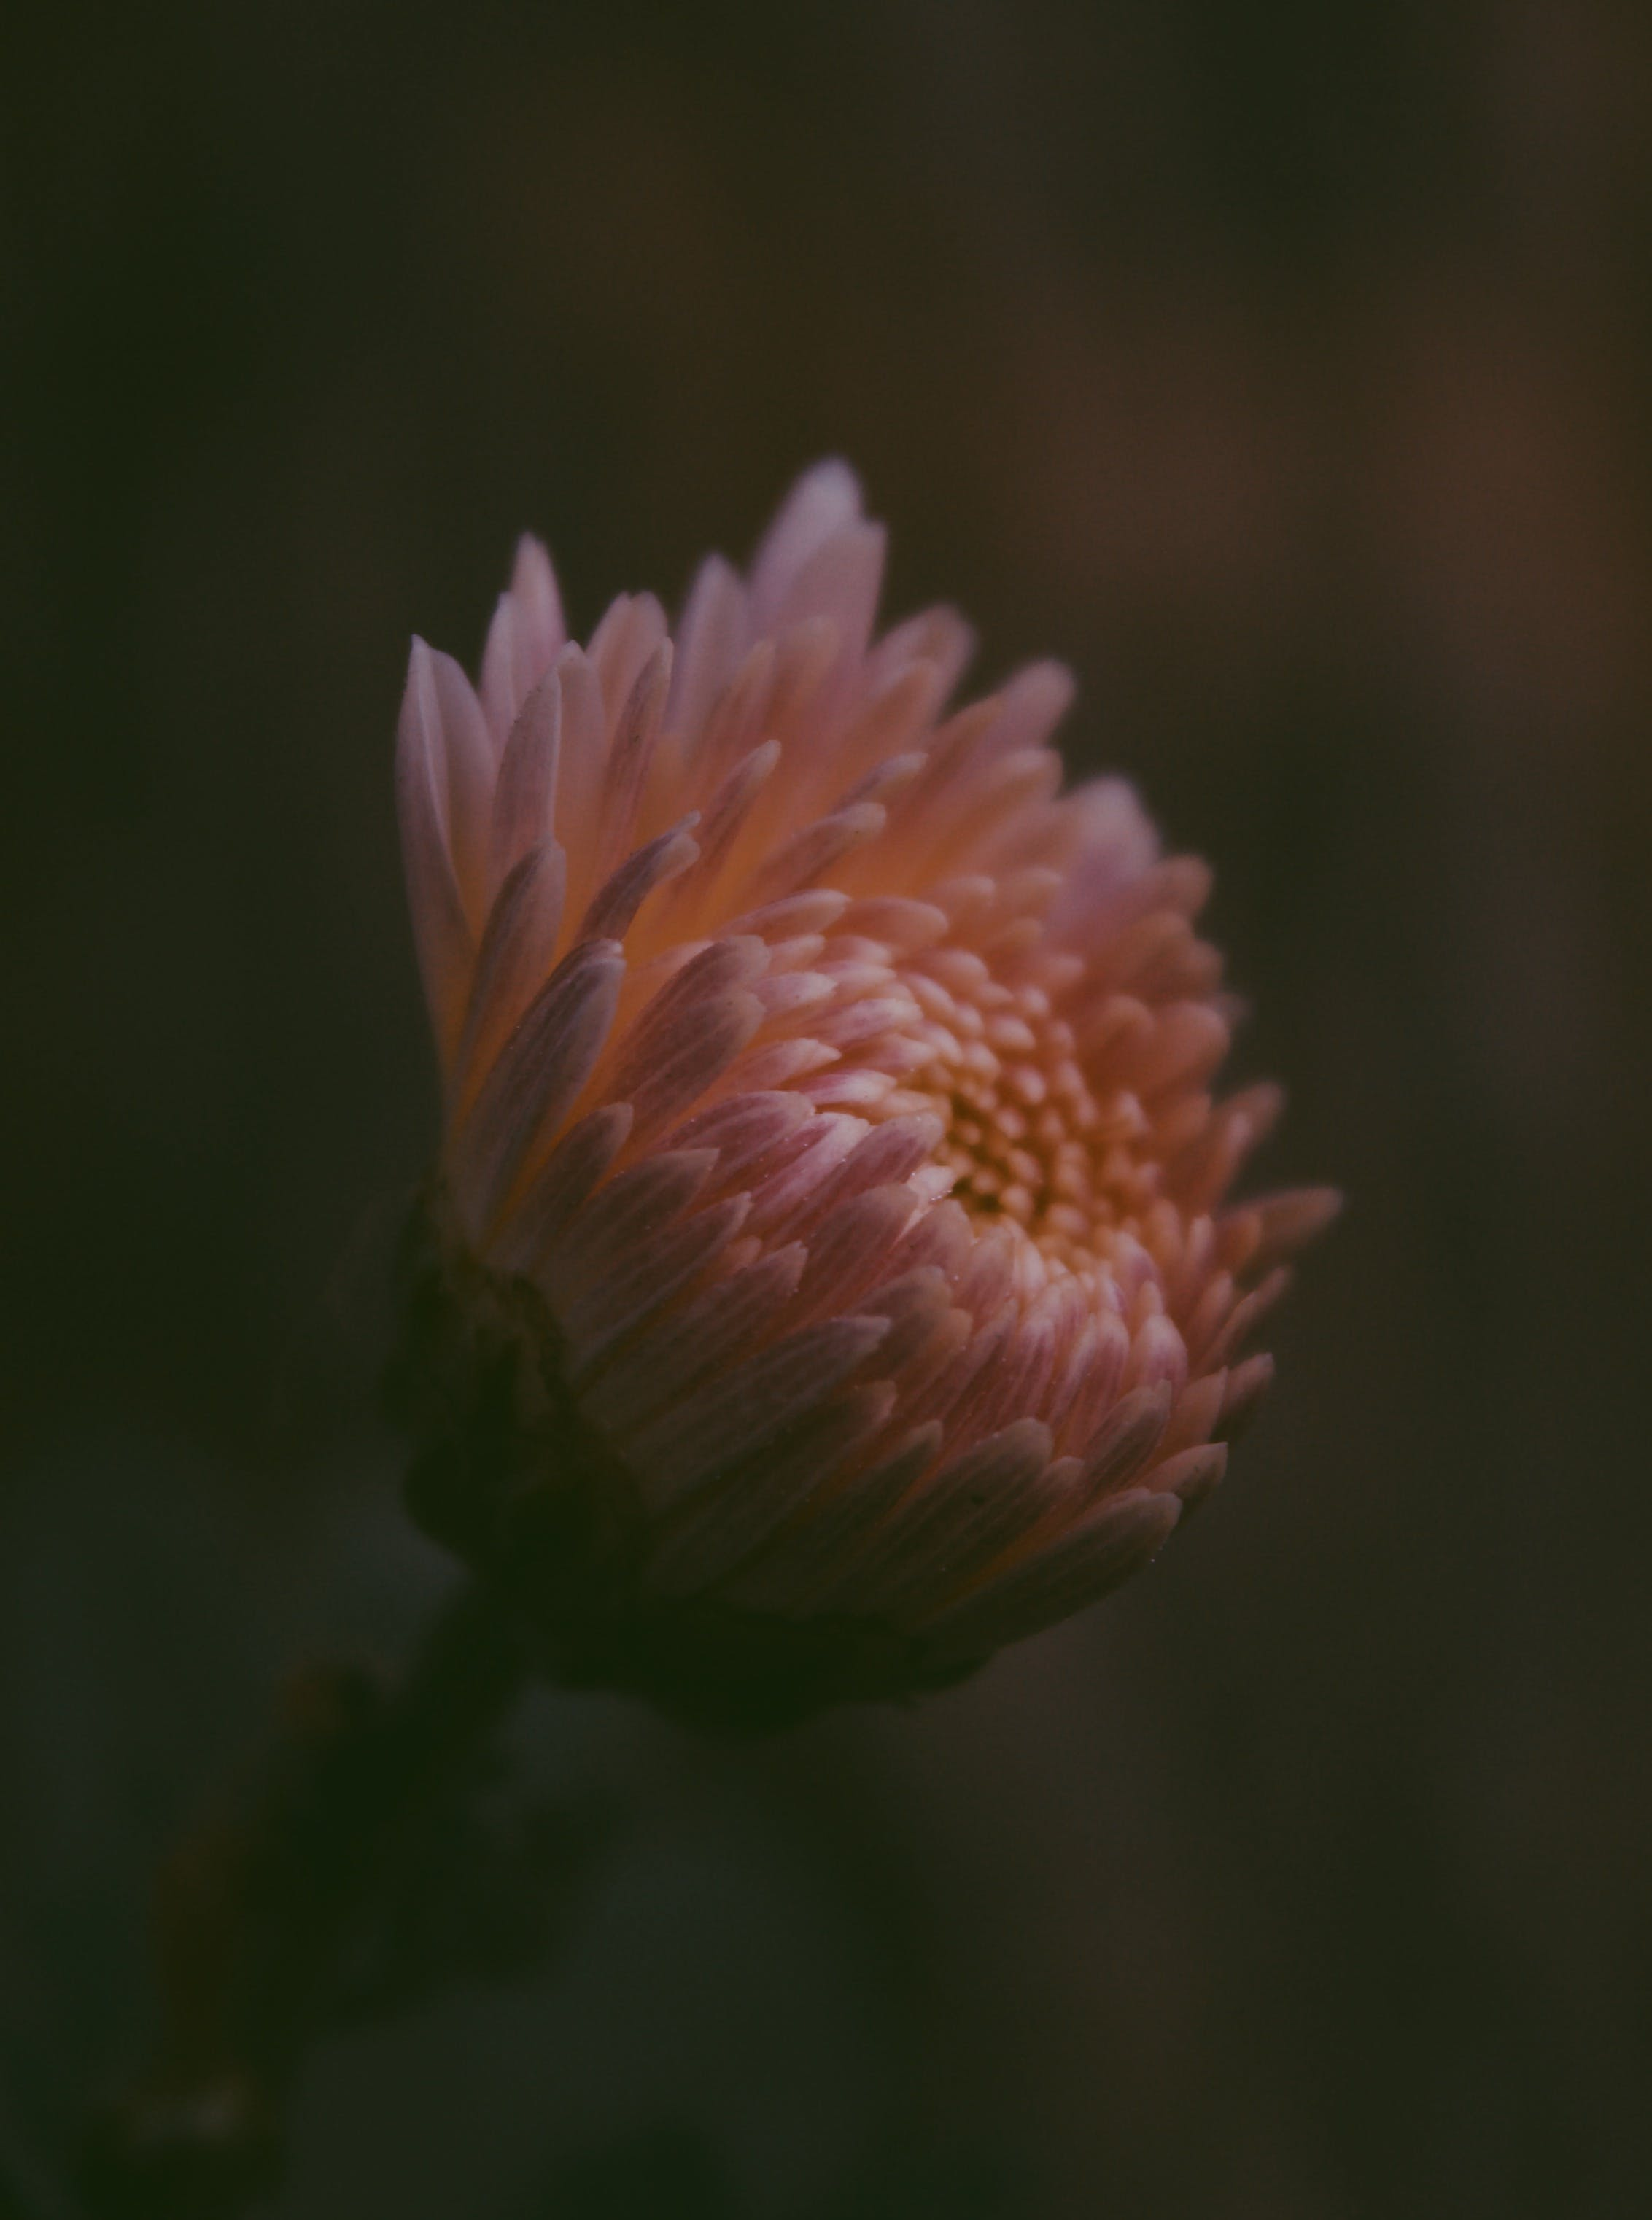 Selective Focus Photography of Pink Chrysanthemum X Grandiflorum Flower